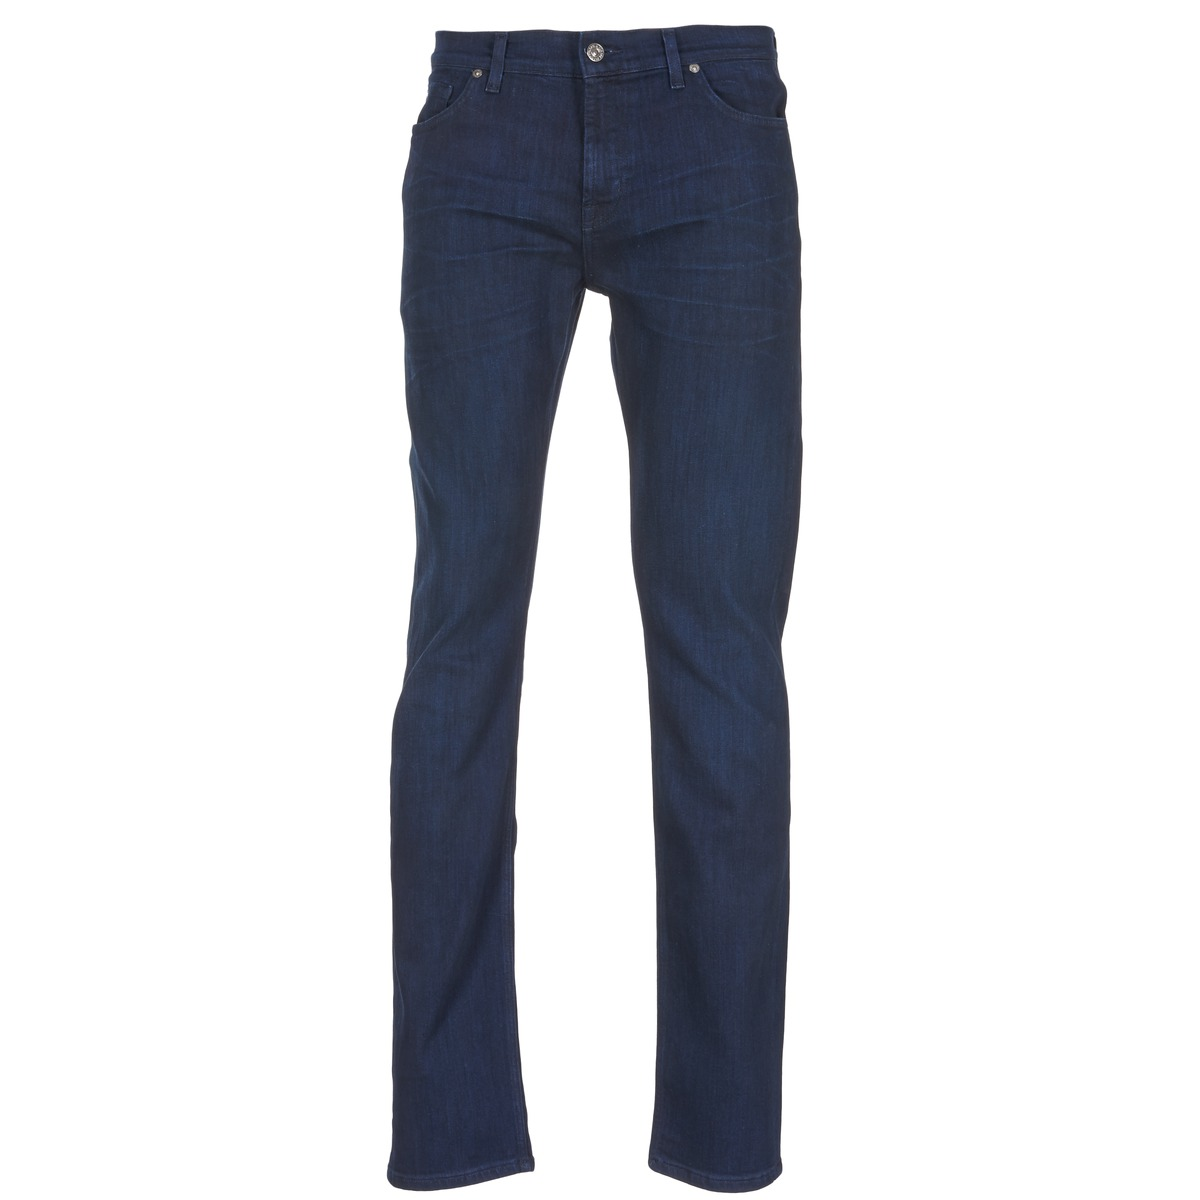 7 for all Mankind RONNIE WINTER INTENSE Blu / SCURO